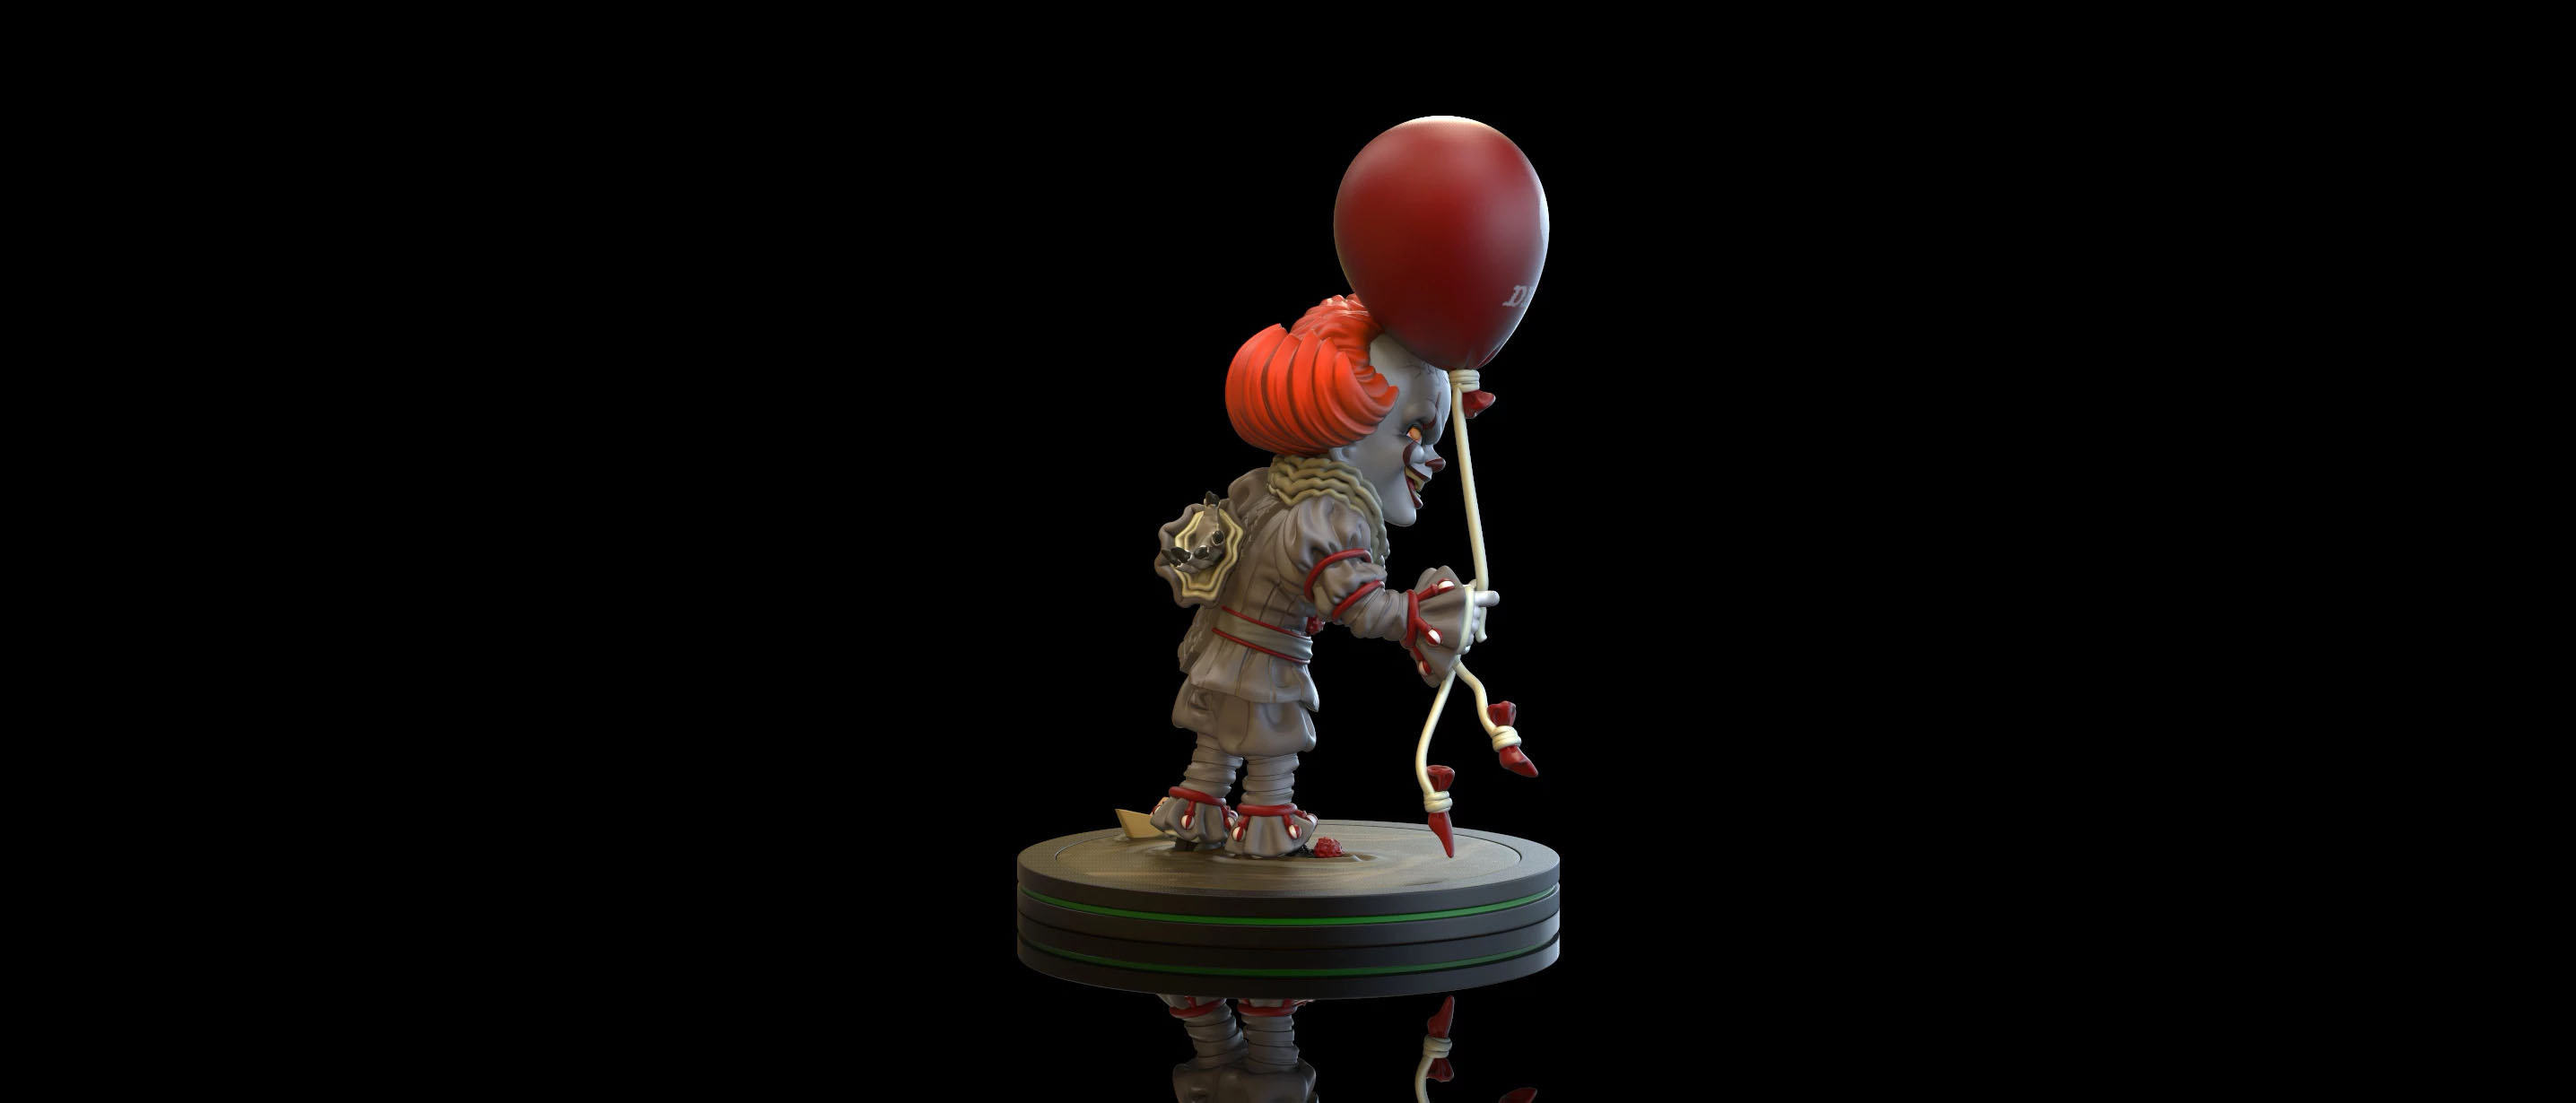 IT2 Pennywise Q Fig 004